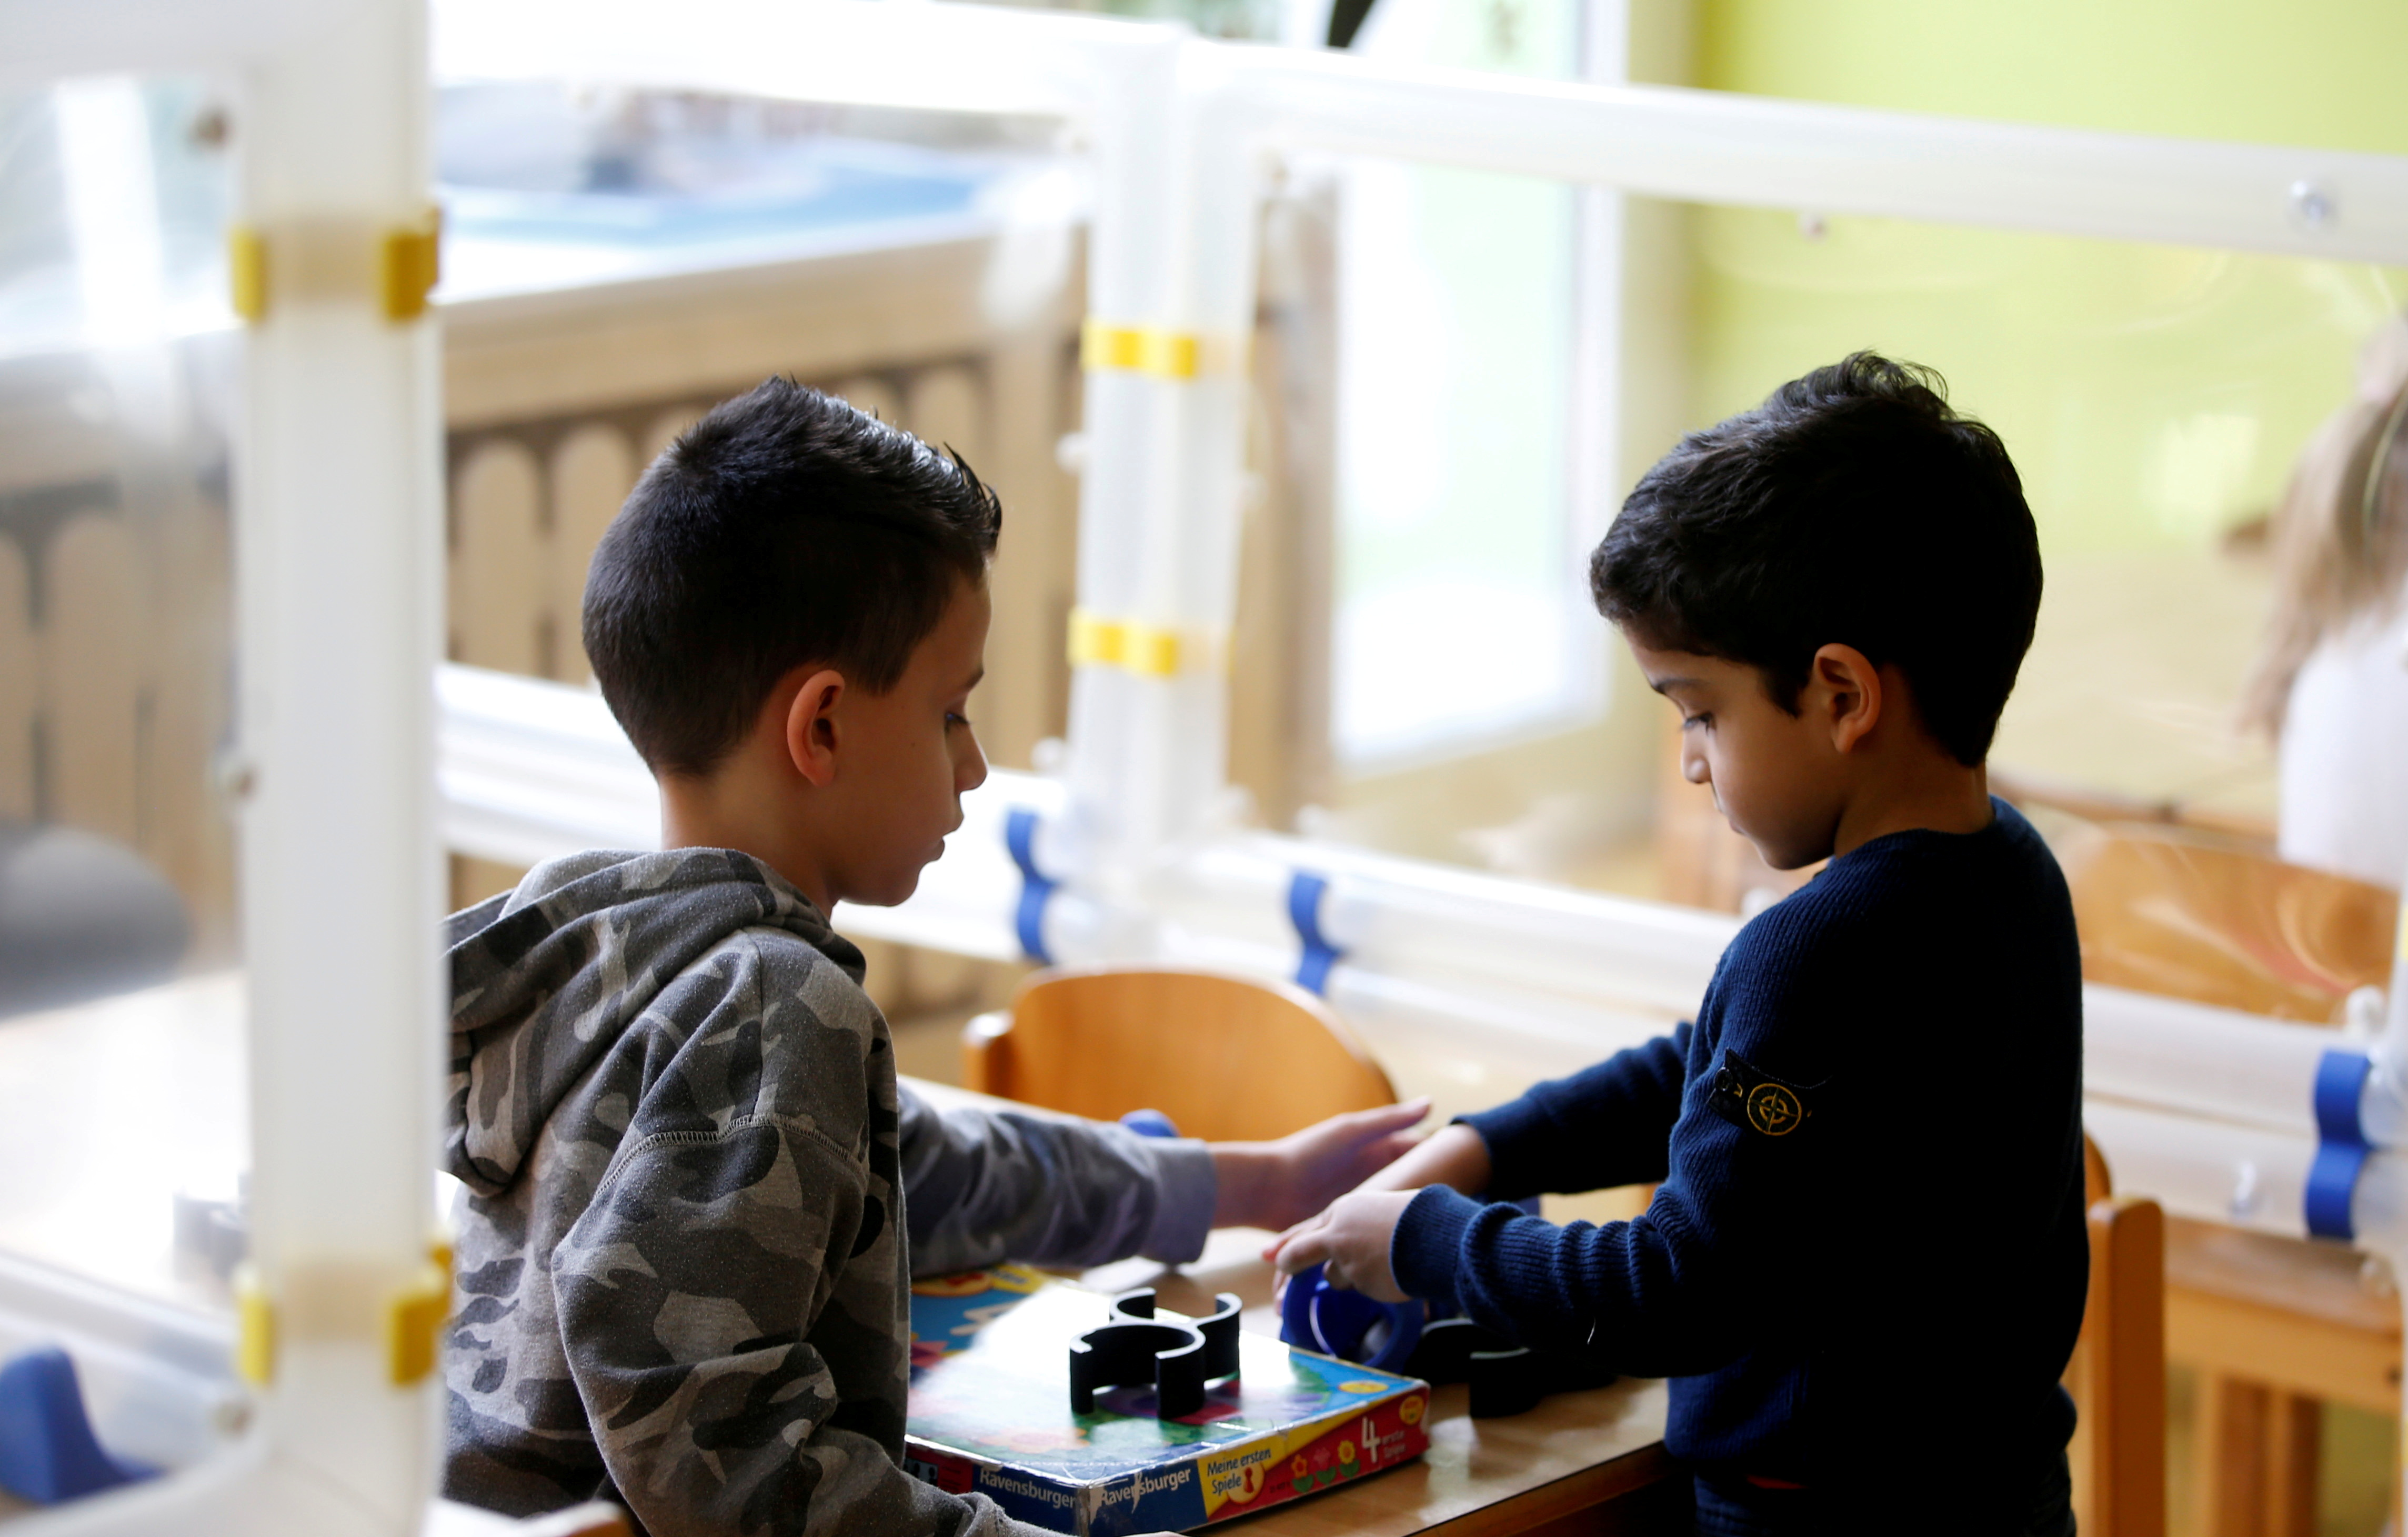 Children play at their tables during a demonstration of the use of sneeze guards at a nursery school as the spread of the coronavirus disease (COVID-19) continues, Velbert, Germany, April 8, 2021. REUTERS/Leon Kuegeler